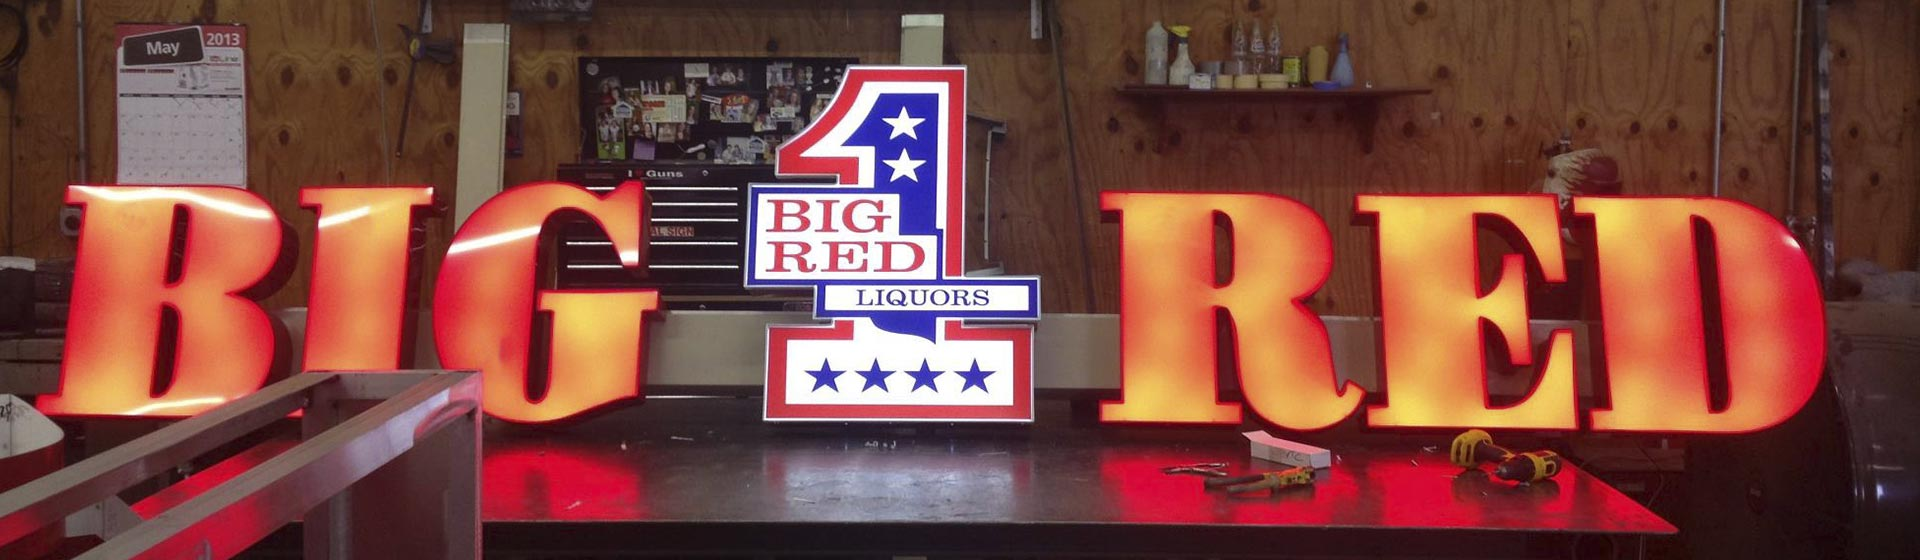 About Big Red Liquors